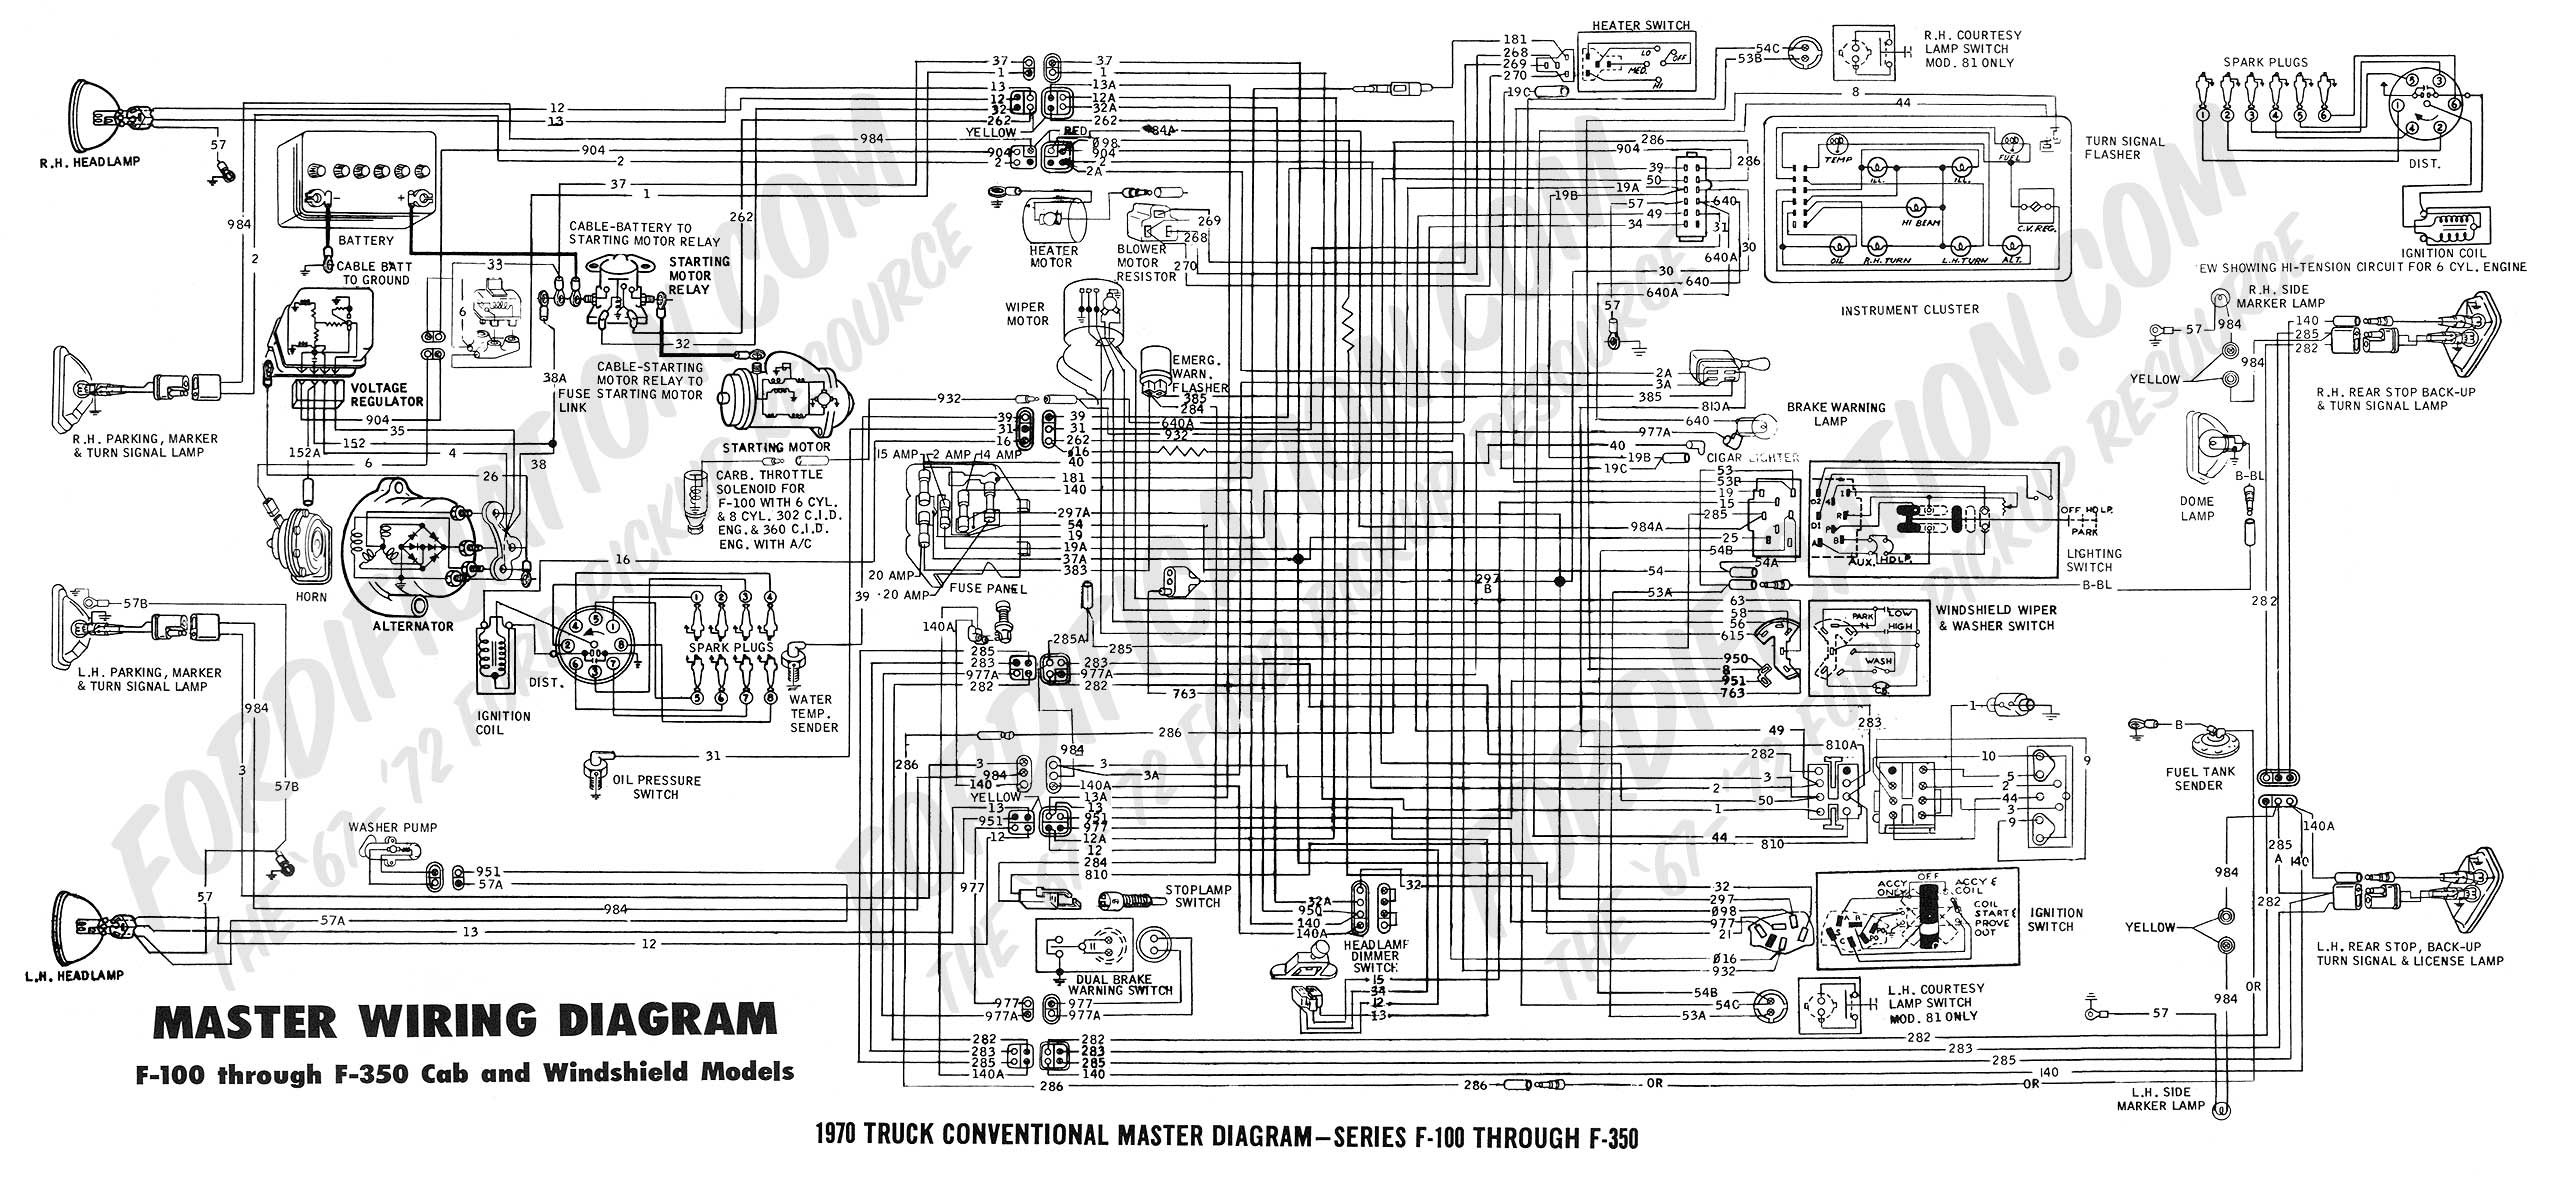 1997 Ford Mustang Radio Wiring Diagram from www.fordification.com